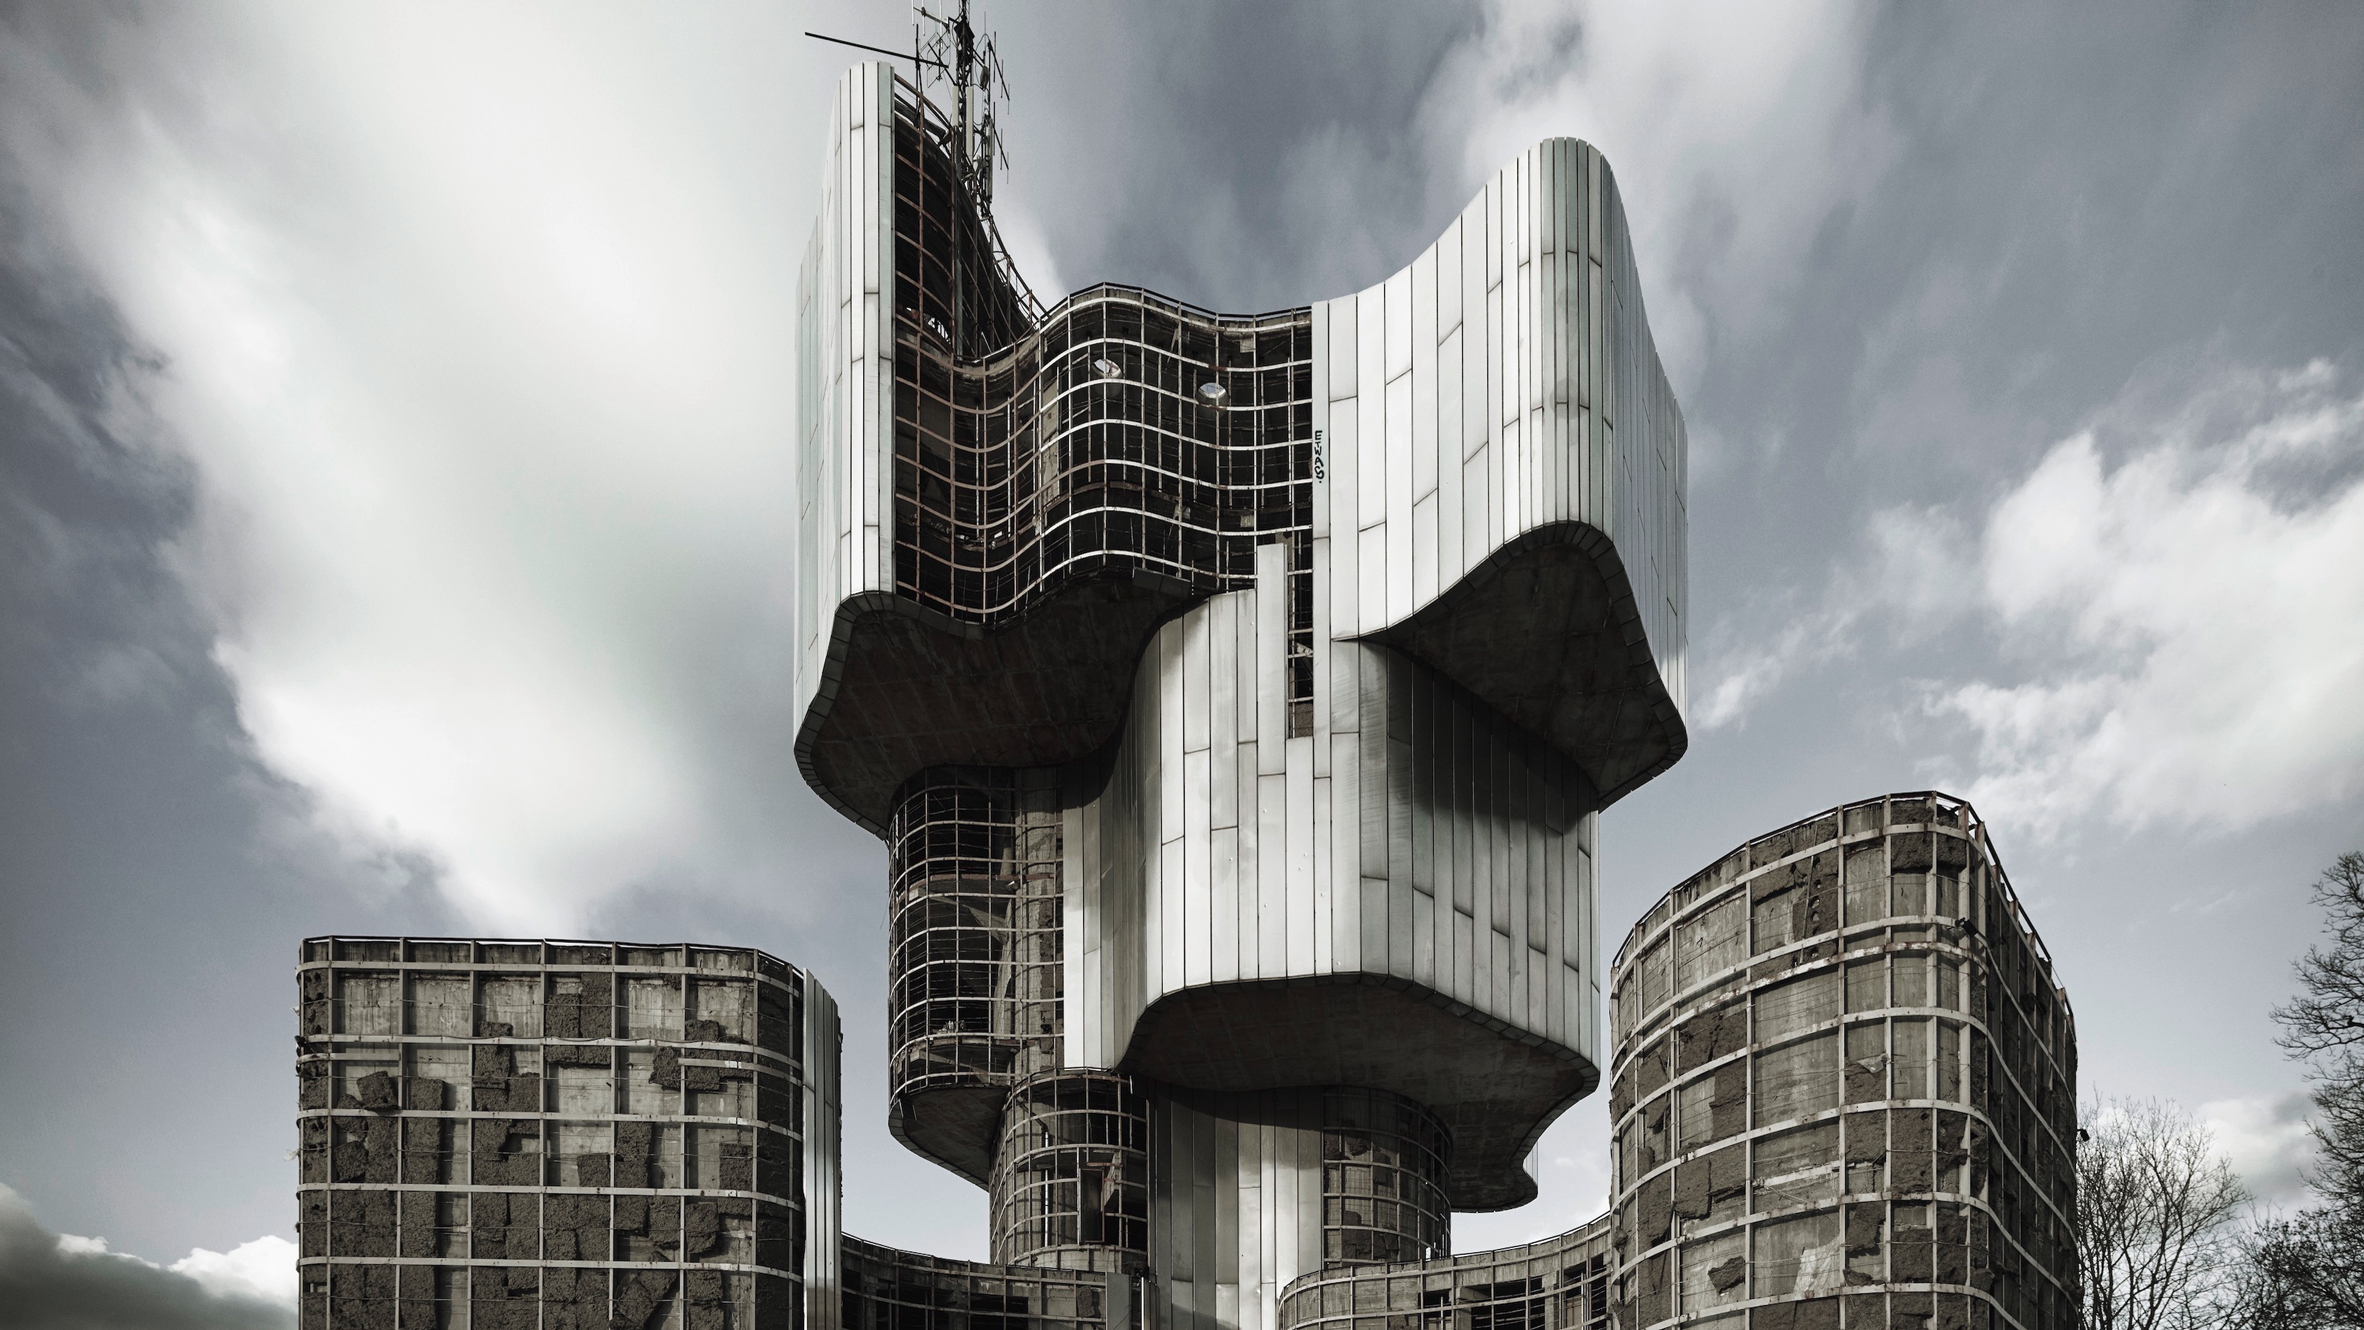 dezeen.com - Dan Howarth - Valentin Jeck photographs Yugoslavia's concrete architecture for MoMA